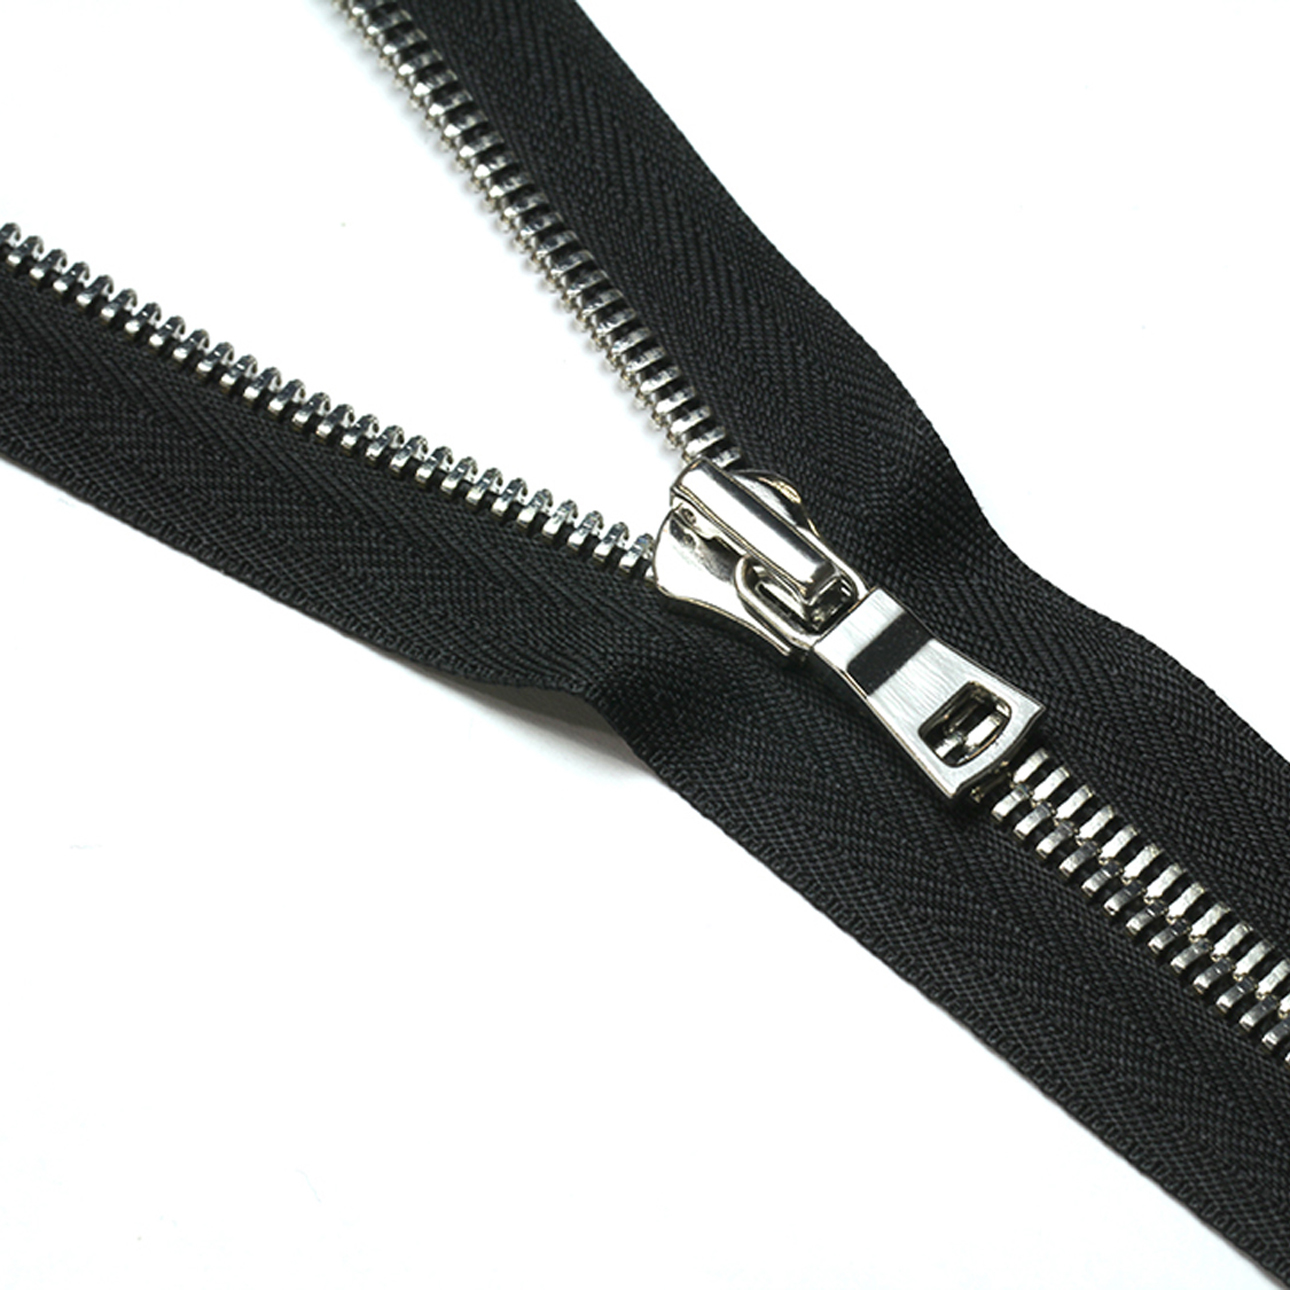 Zipper, Button, Fastening Tape